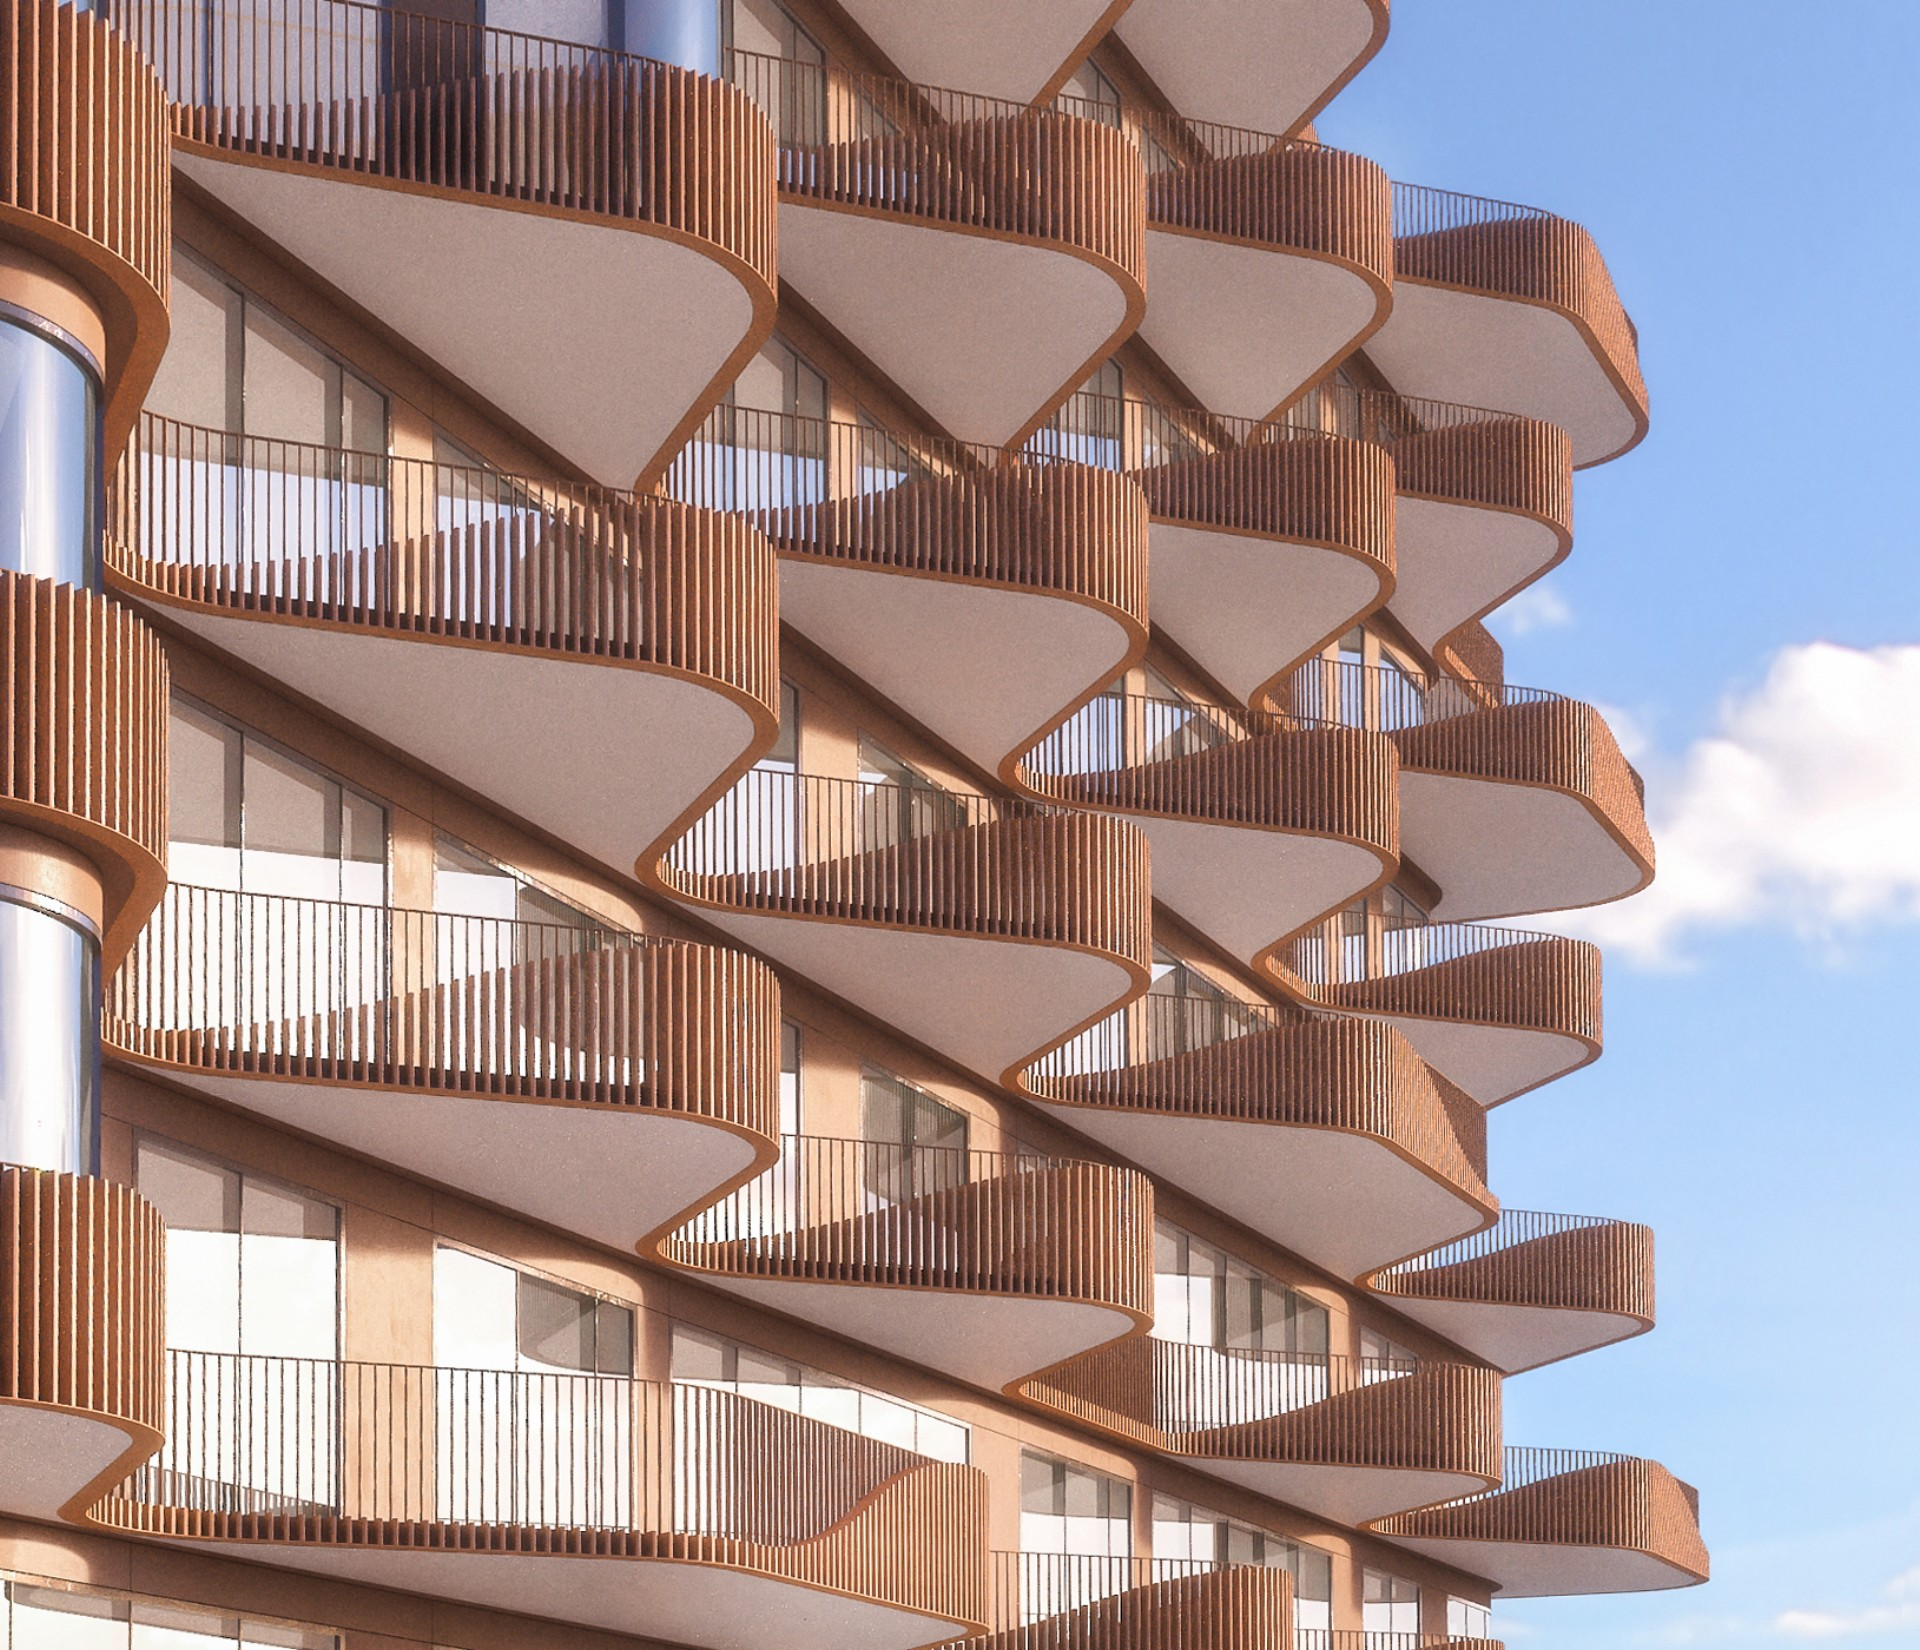 Aquabella and Aqualuna are two residential projects by 3XN Architects in Toronto